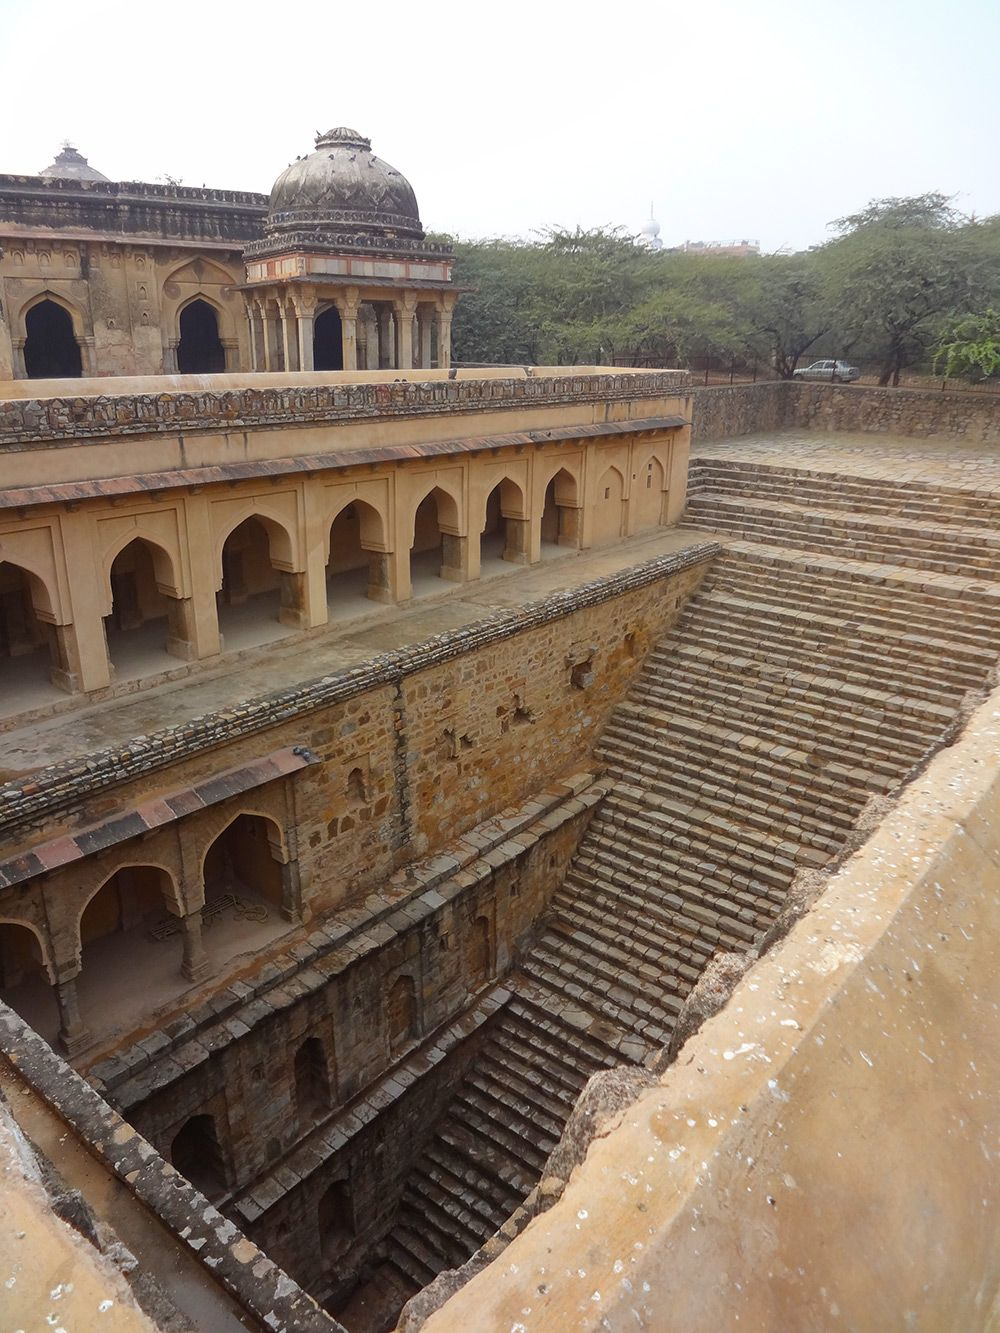 Stepwell Architecture http://www.thisiscolossal.com/2015/08/stepwell-architecture/